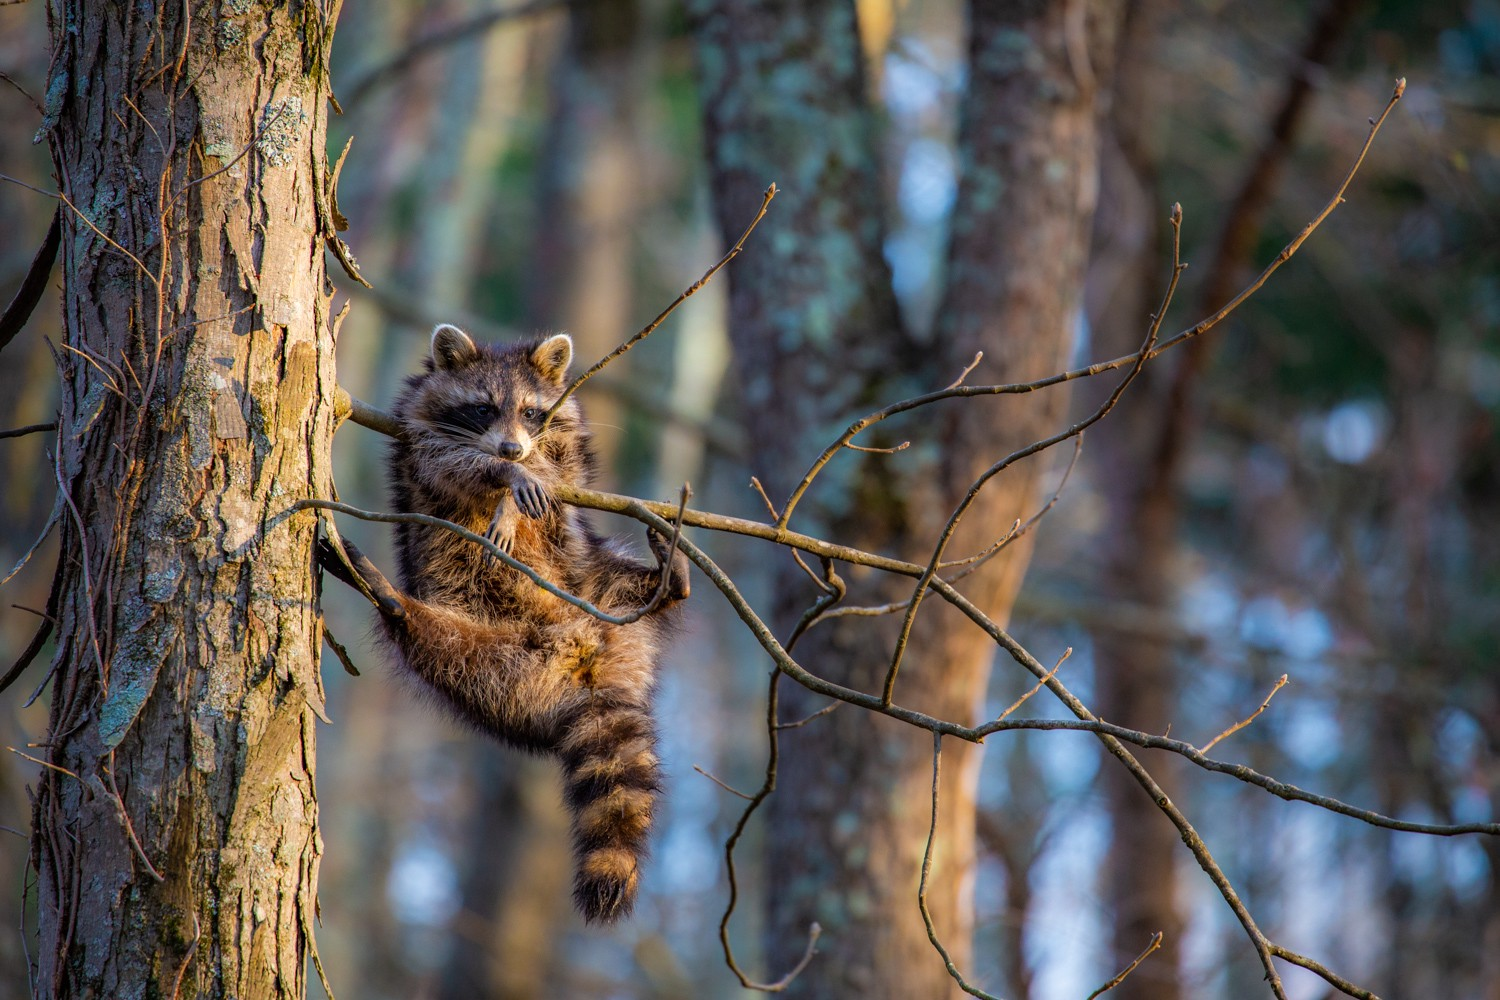 A young raccoon hanging in an awkward way from a very small tree branch